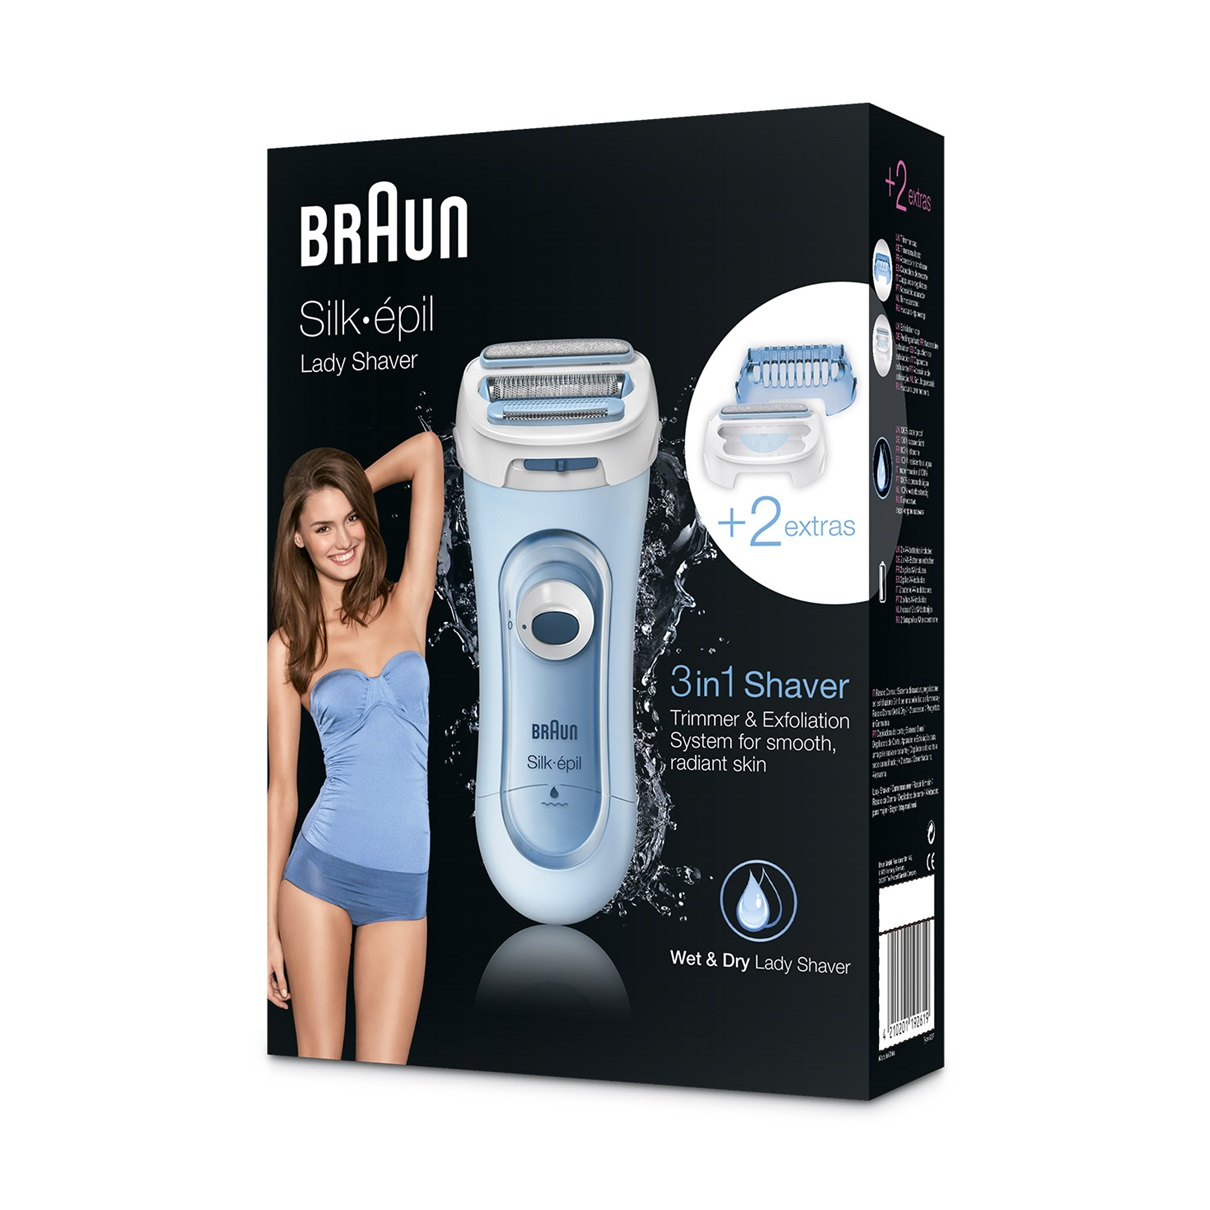 Braun Lady Shaver - 5160 Wet & Dry Electric Shaver for Women  - packaging